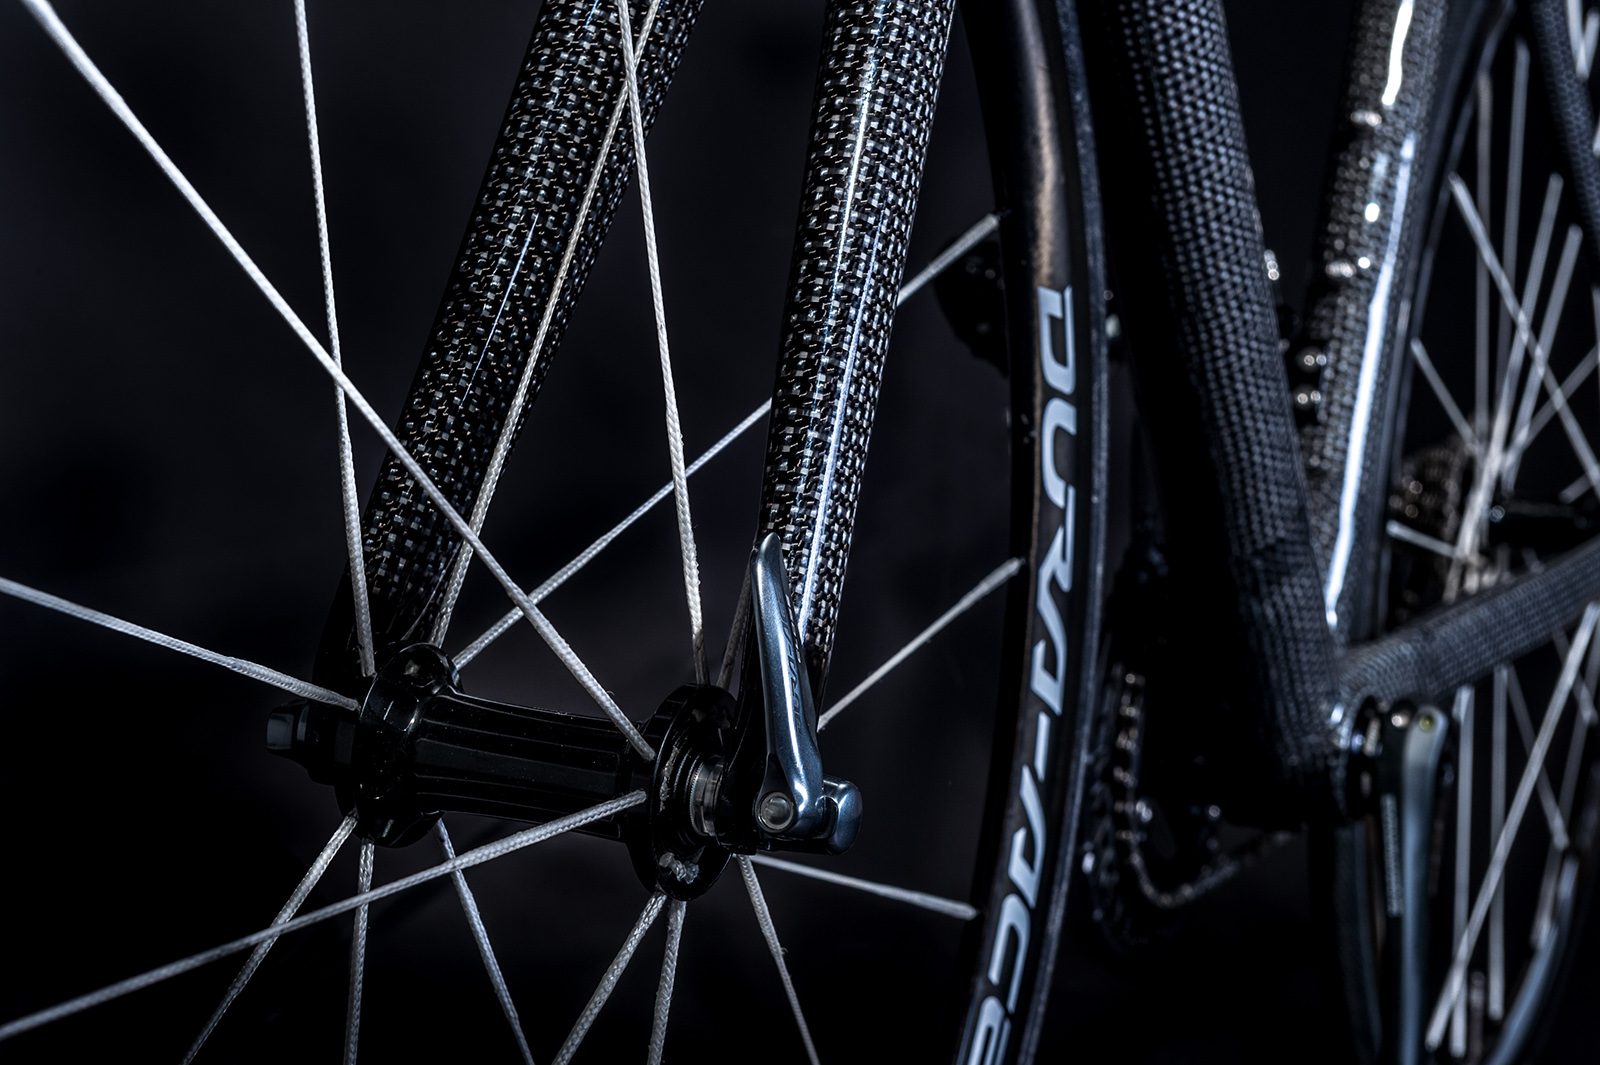 DSM Dyneema is even exploring the use of Dyneema fibers to replace conventional stainless steel spokes, saying they're less likely to break in a crash and also offer enhanced vibration damping characteristics. Photo: DSM Dyneema.